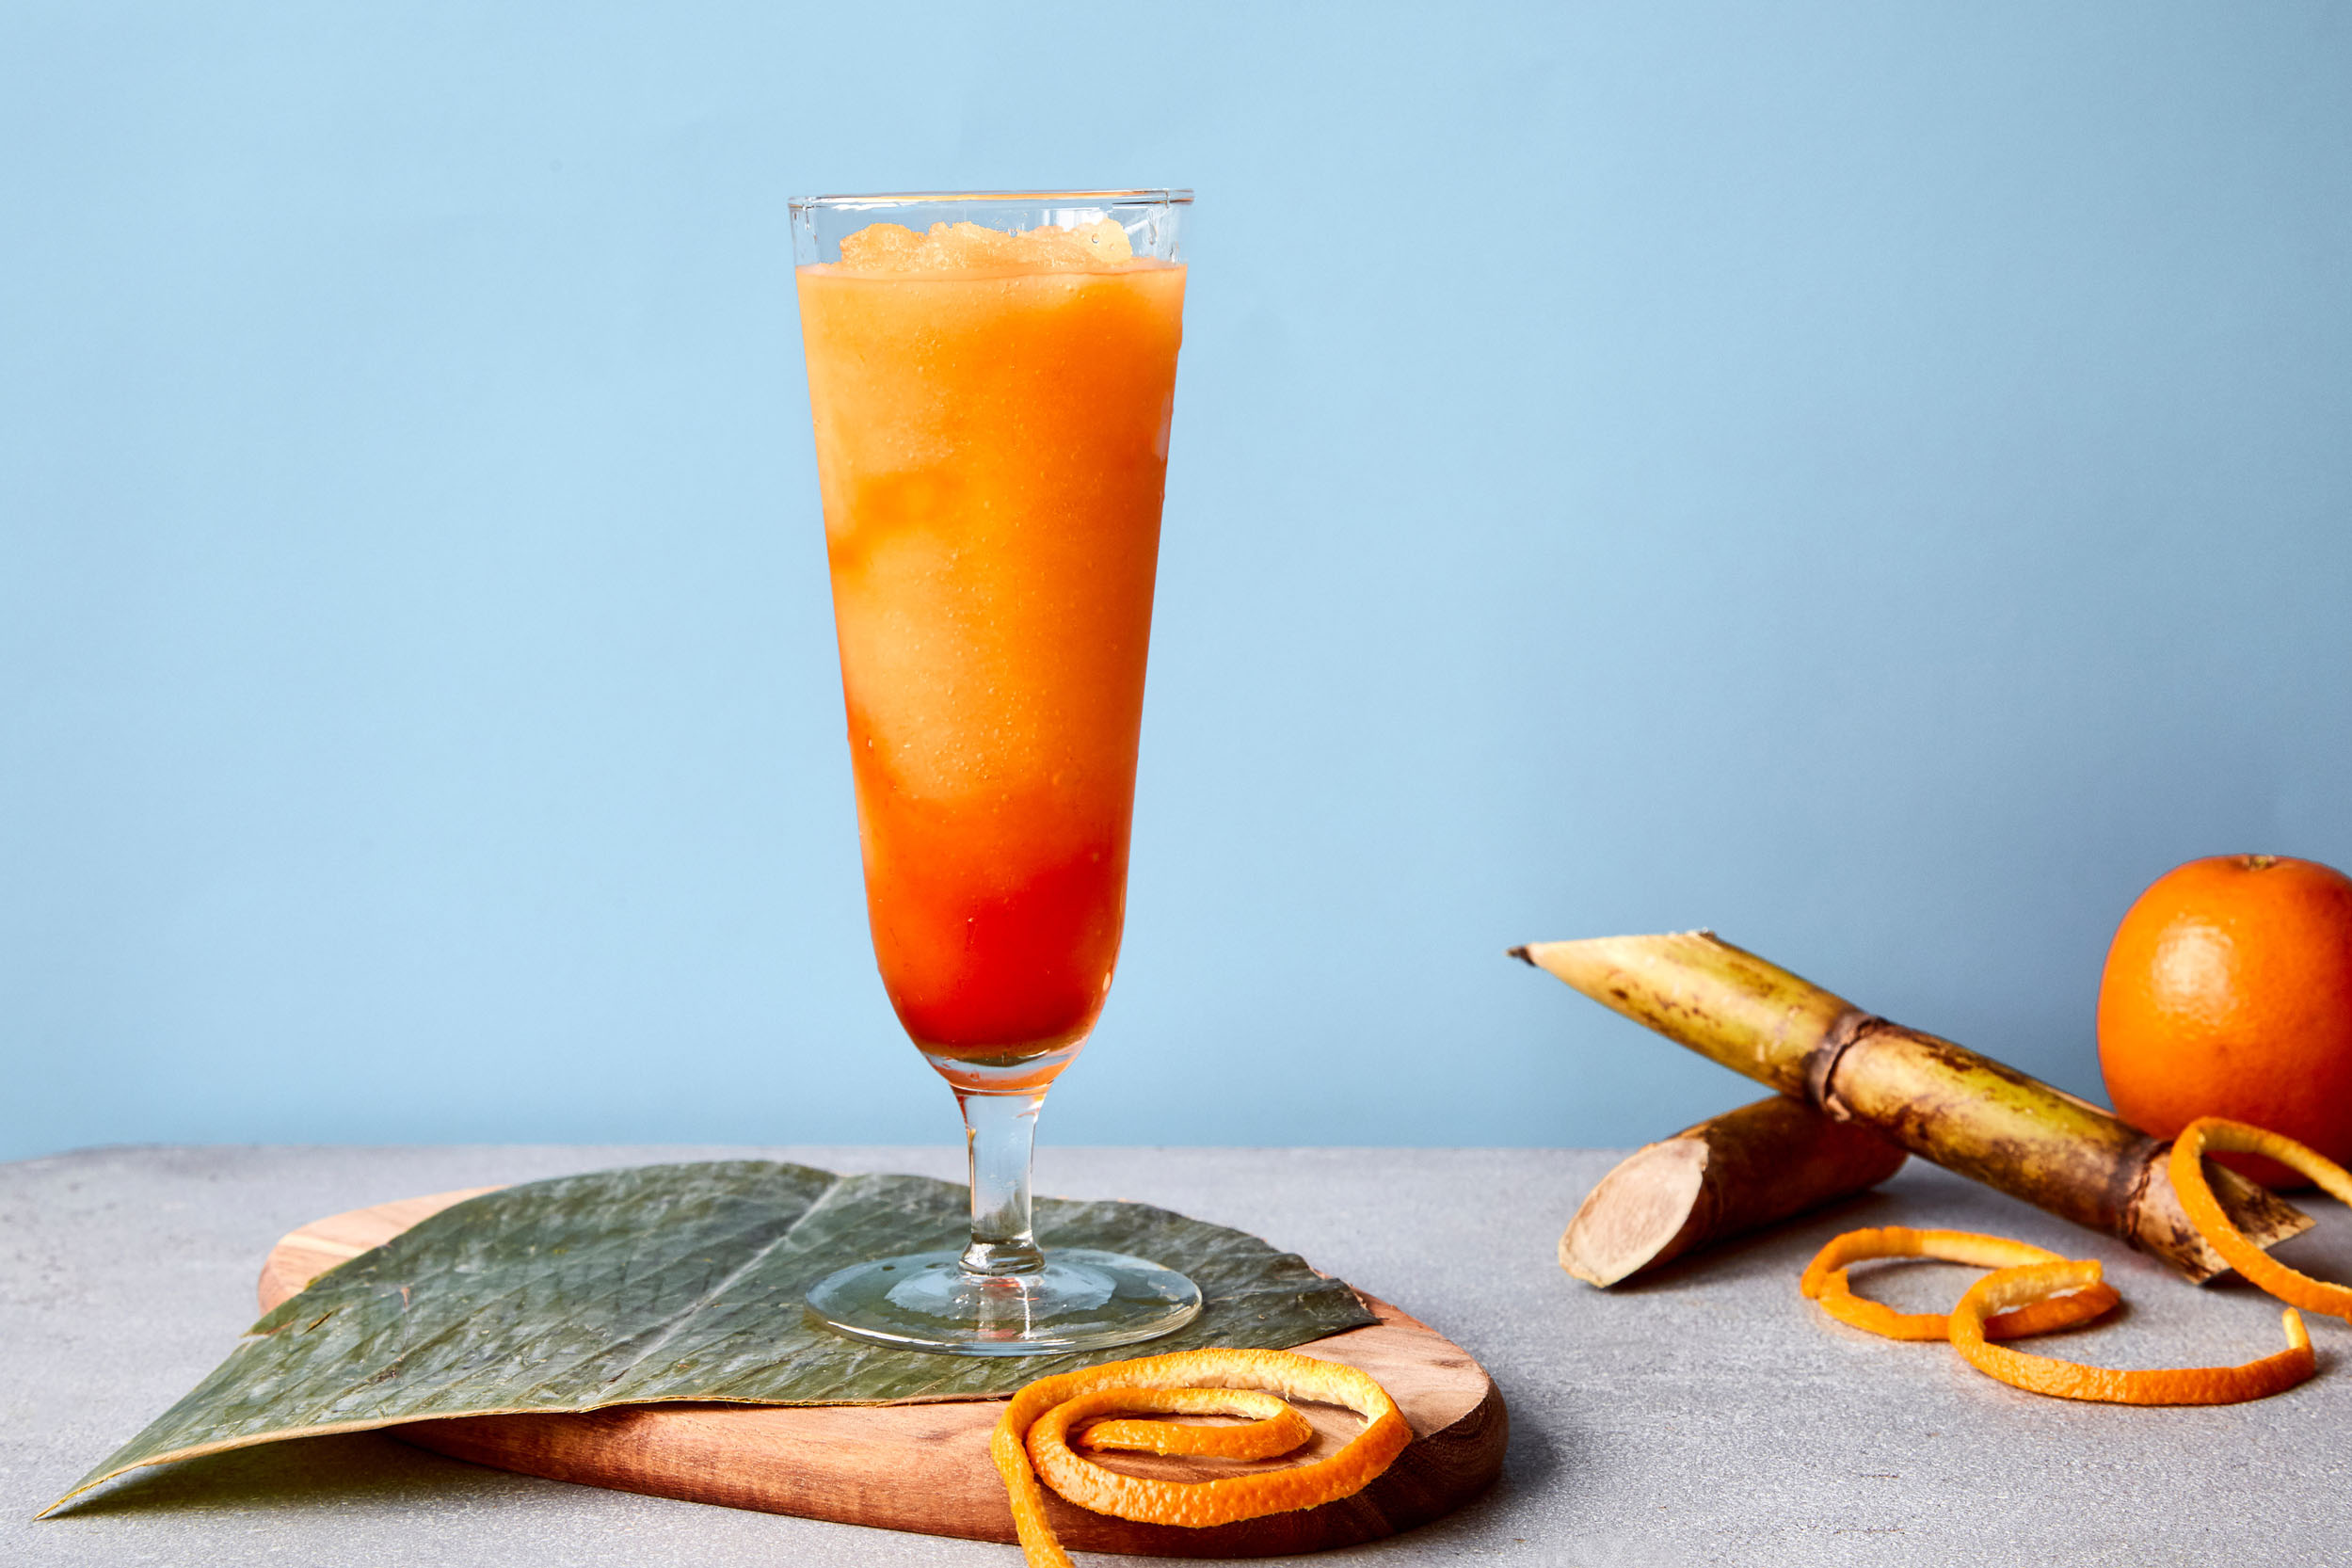 Frozen hurricane cocktail with an orange peel.